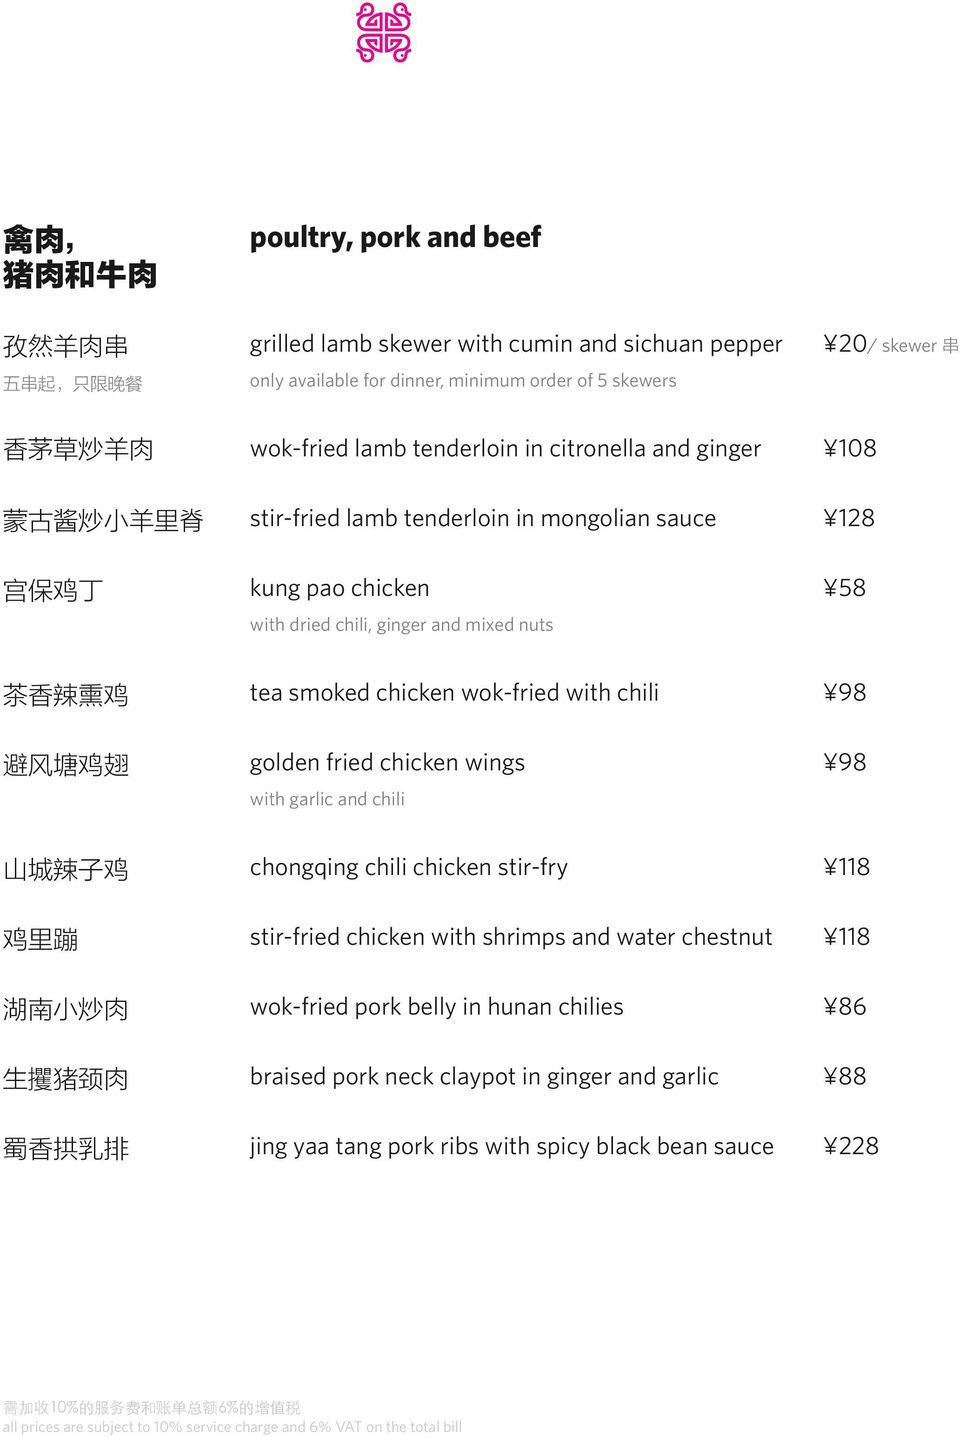 鸡 tea smoked chicken wok-fried with chili 98 避 风 塘 鸡 翅 golden fried chicken wings with garlic and chili 98 山 城 辣 子 鸡 chongqing chili chicken stir-fry 118 鸡 里 蹦 stir-fried chicken with shrimps